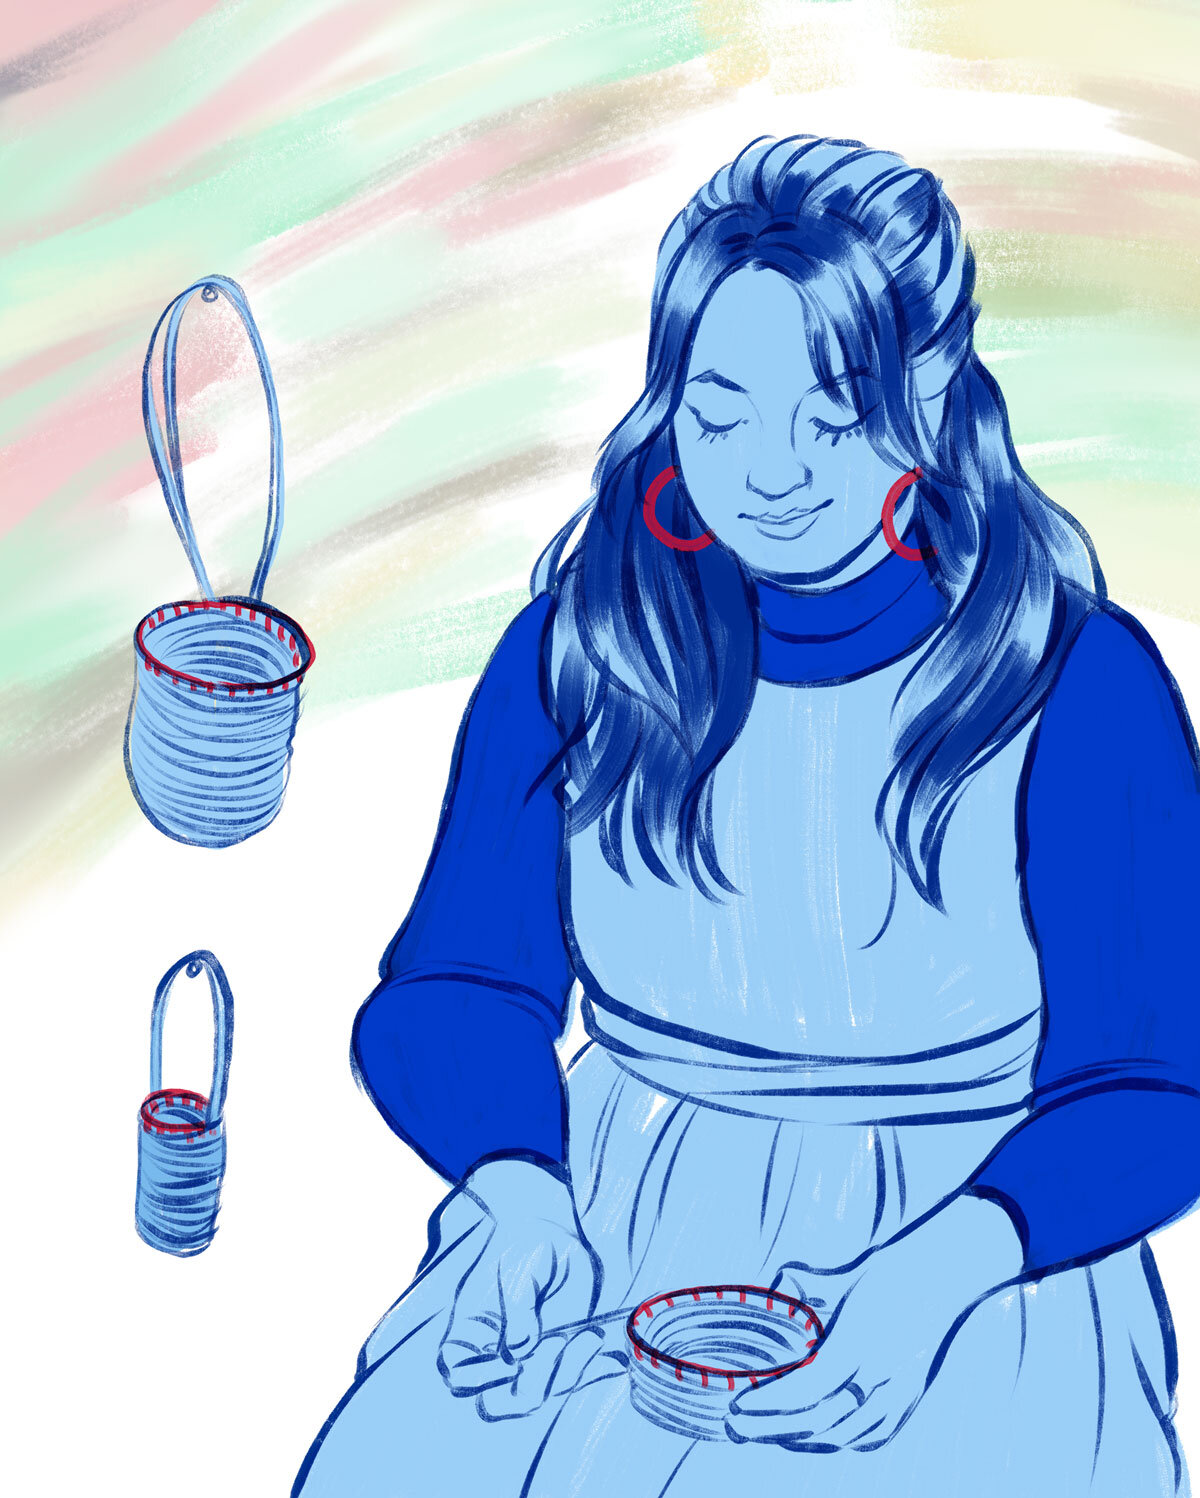 Jenna Lee weaving a basket, illustrated by Viet-My Bui in different blue tones.